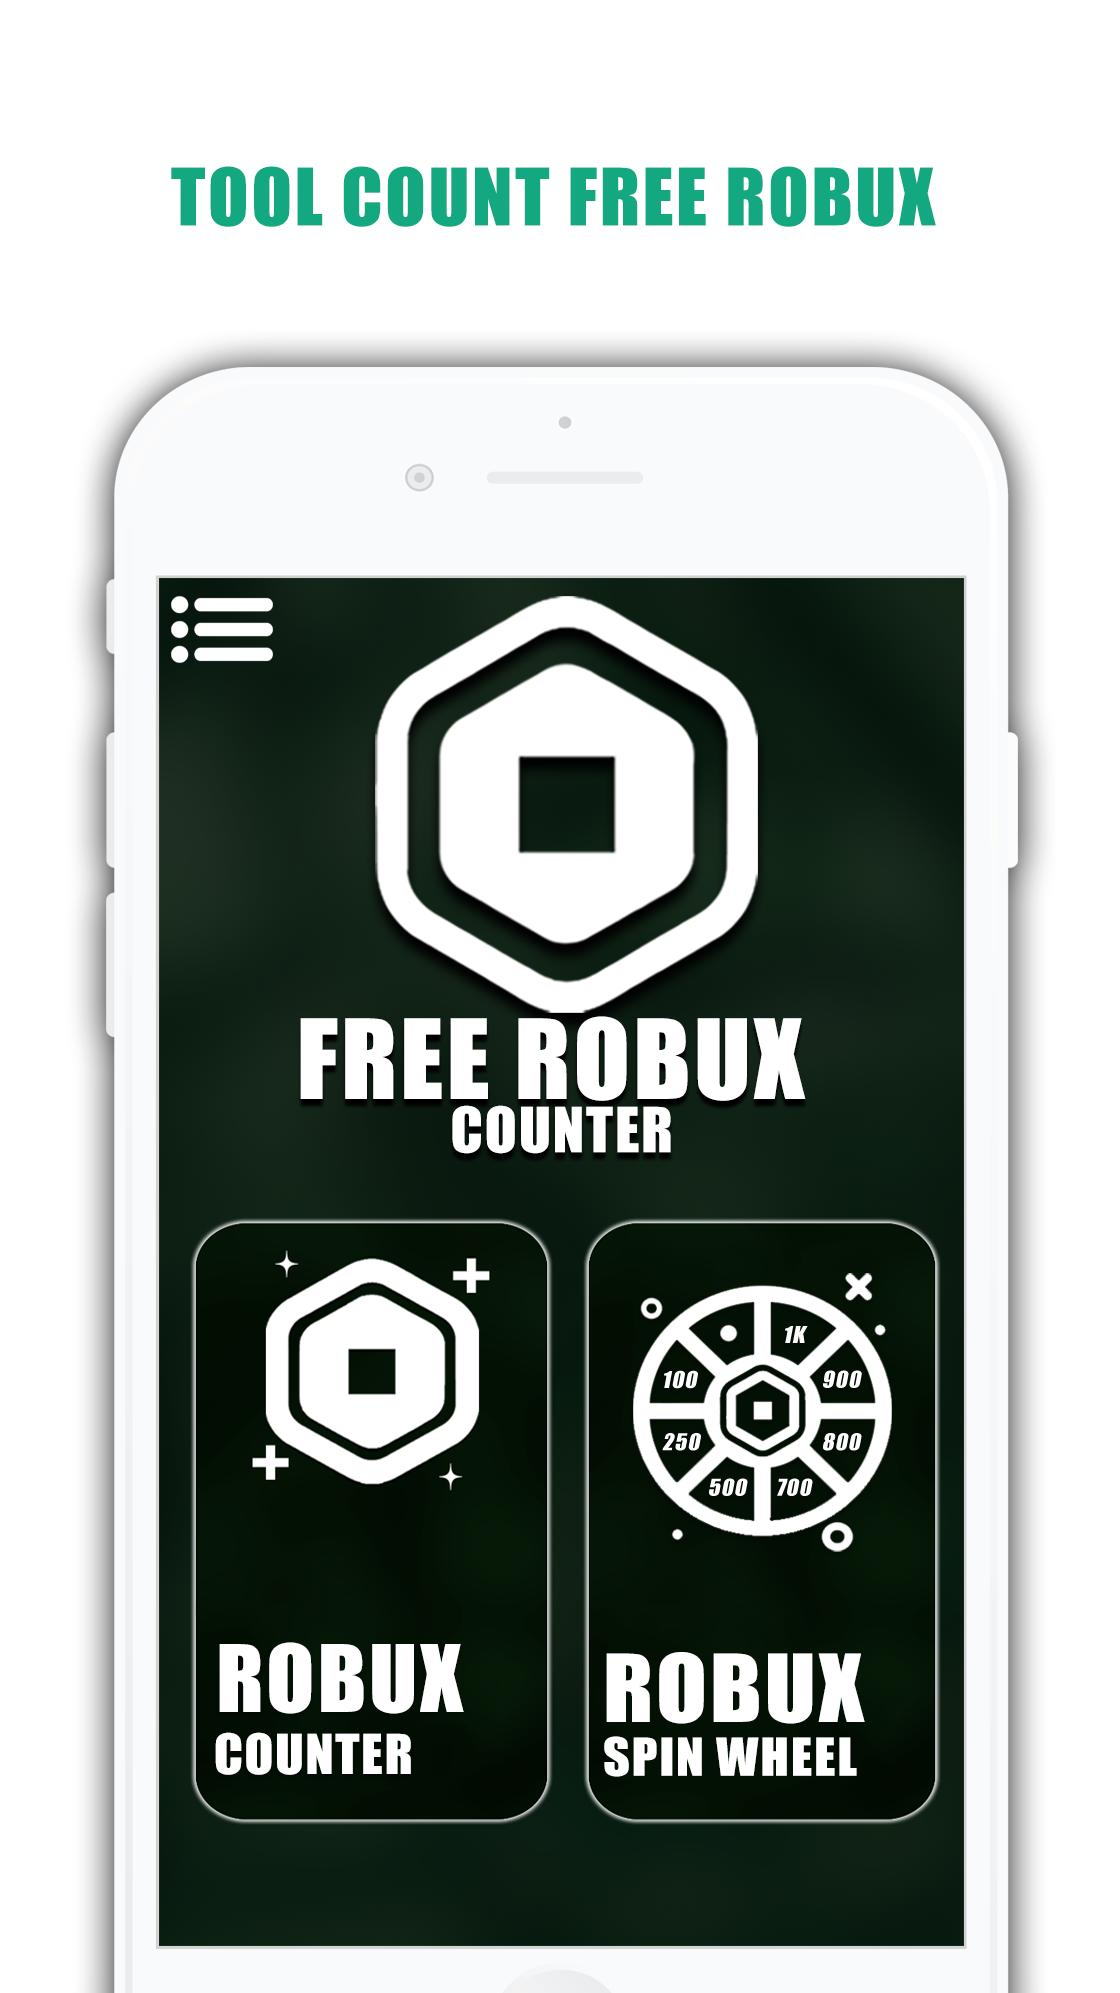 Get Free Robux Win Daily Free Rbx Lucky Robux Apps En Codes For Roblox Robux 2019 On Amazon Tablet Free Robux Counter For Rblox 2020 For Android Apk Download